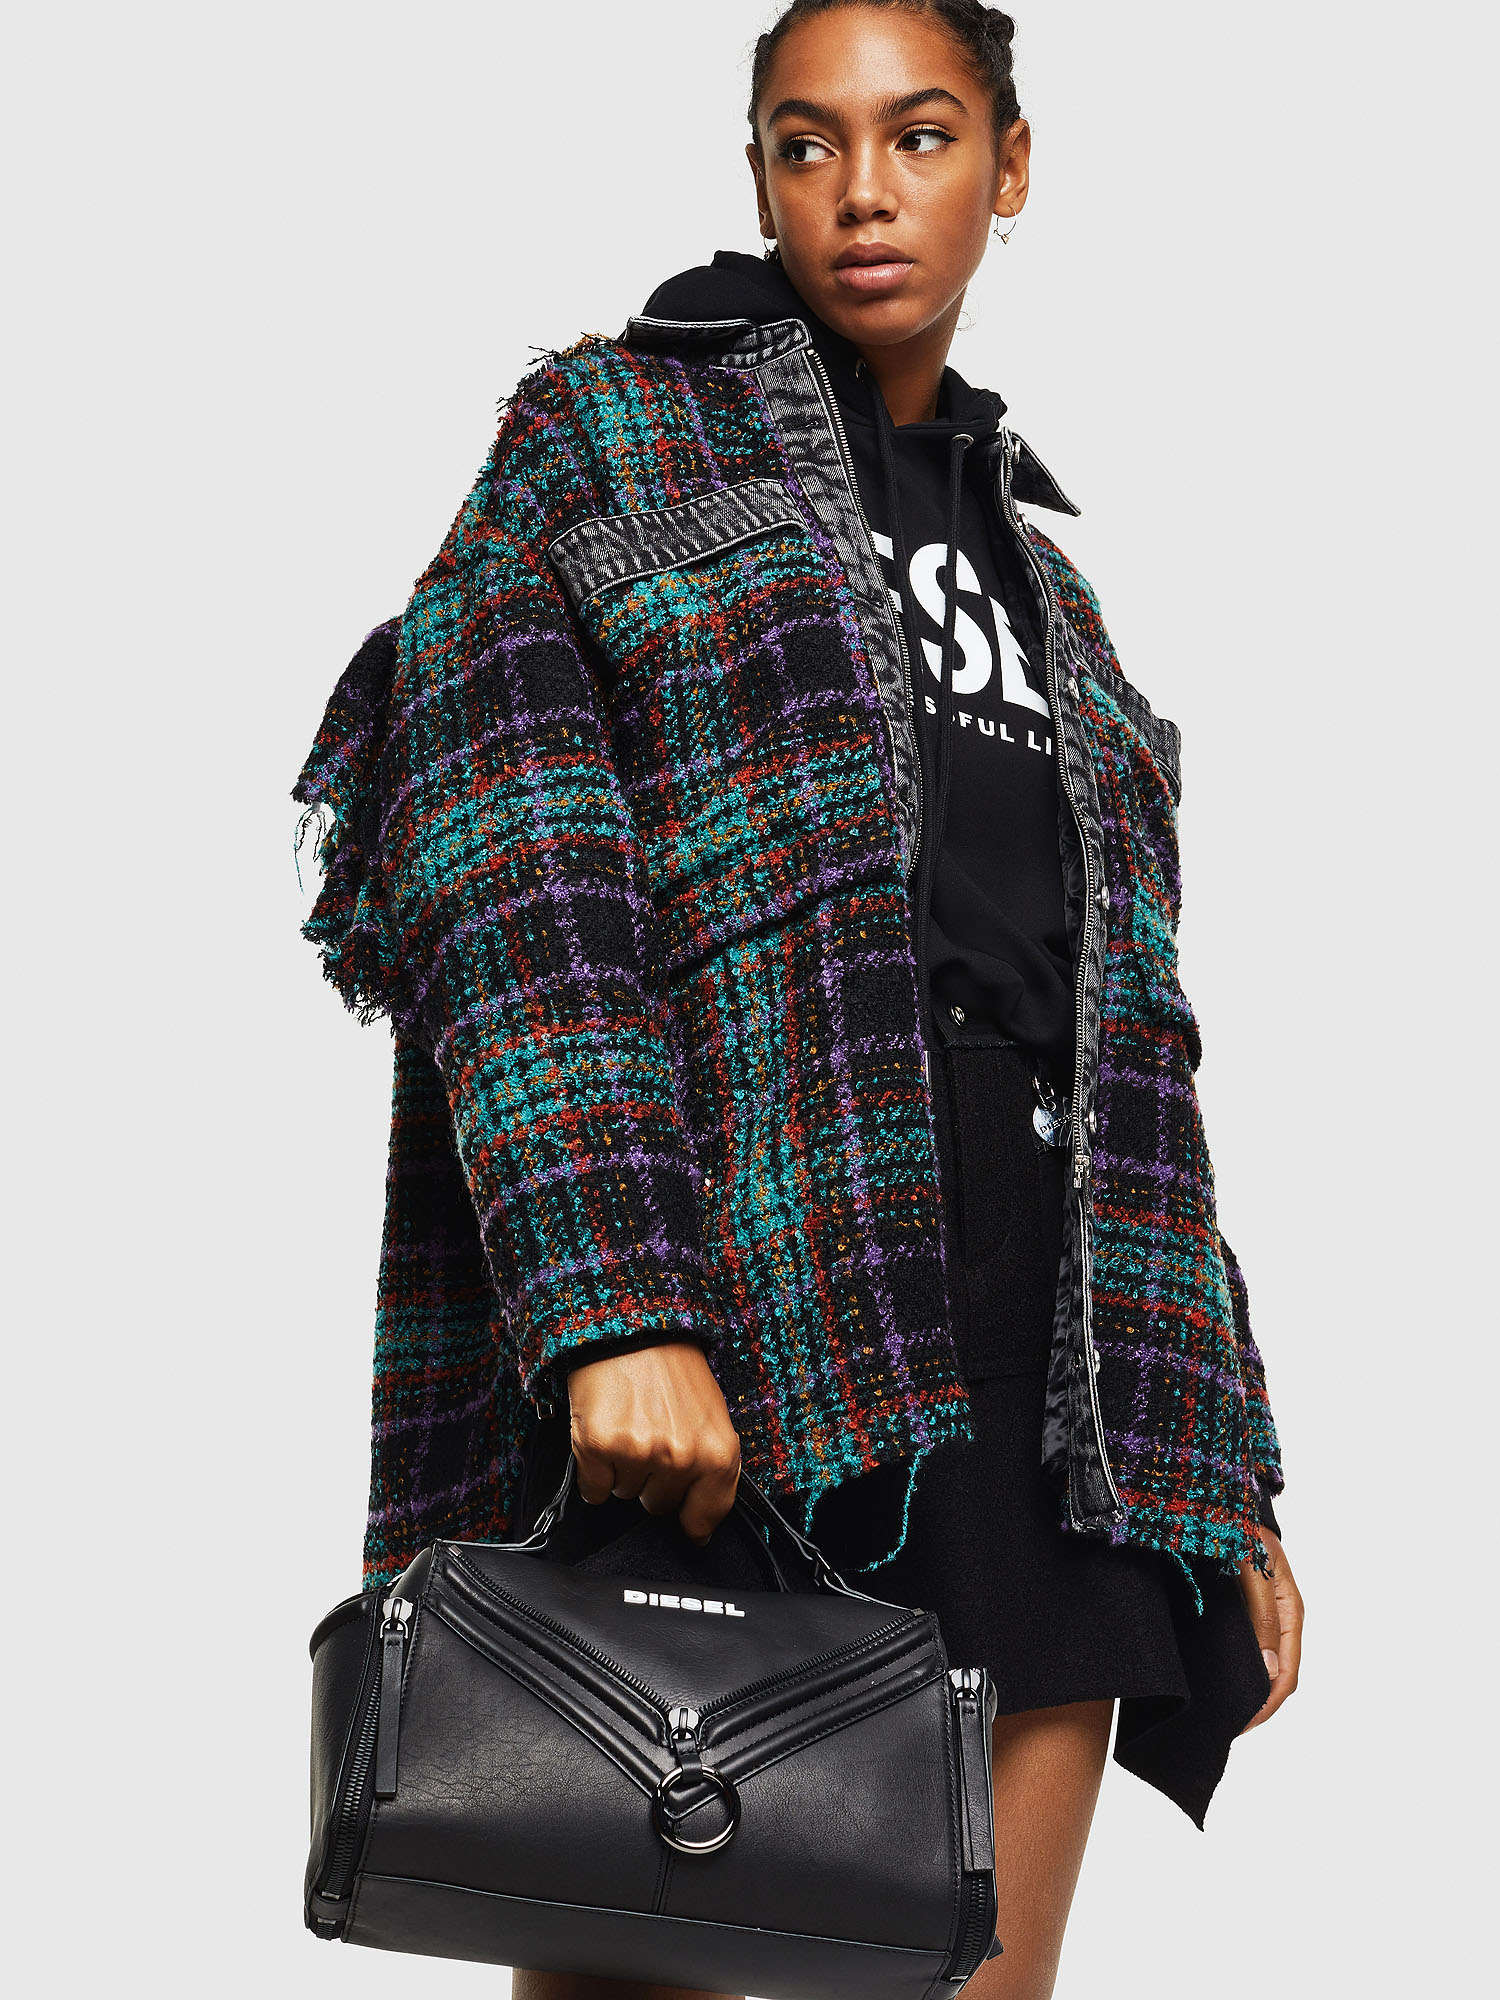 Diesel - LE-ZIPPER SATCHEL,  - Satchels and Handbags - Image 6